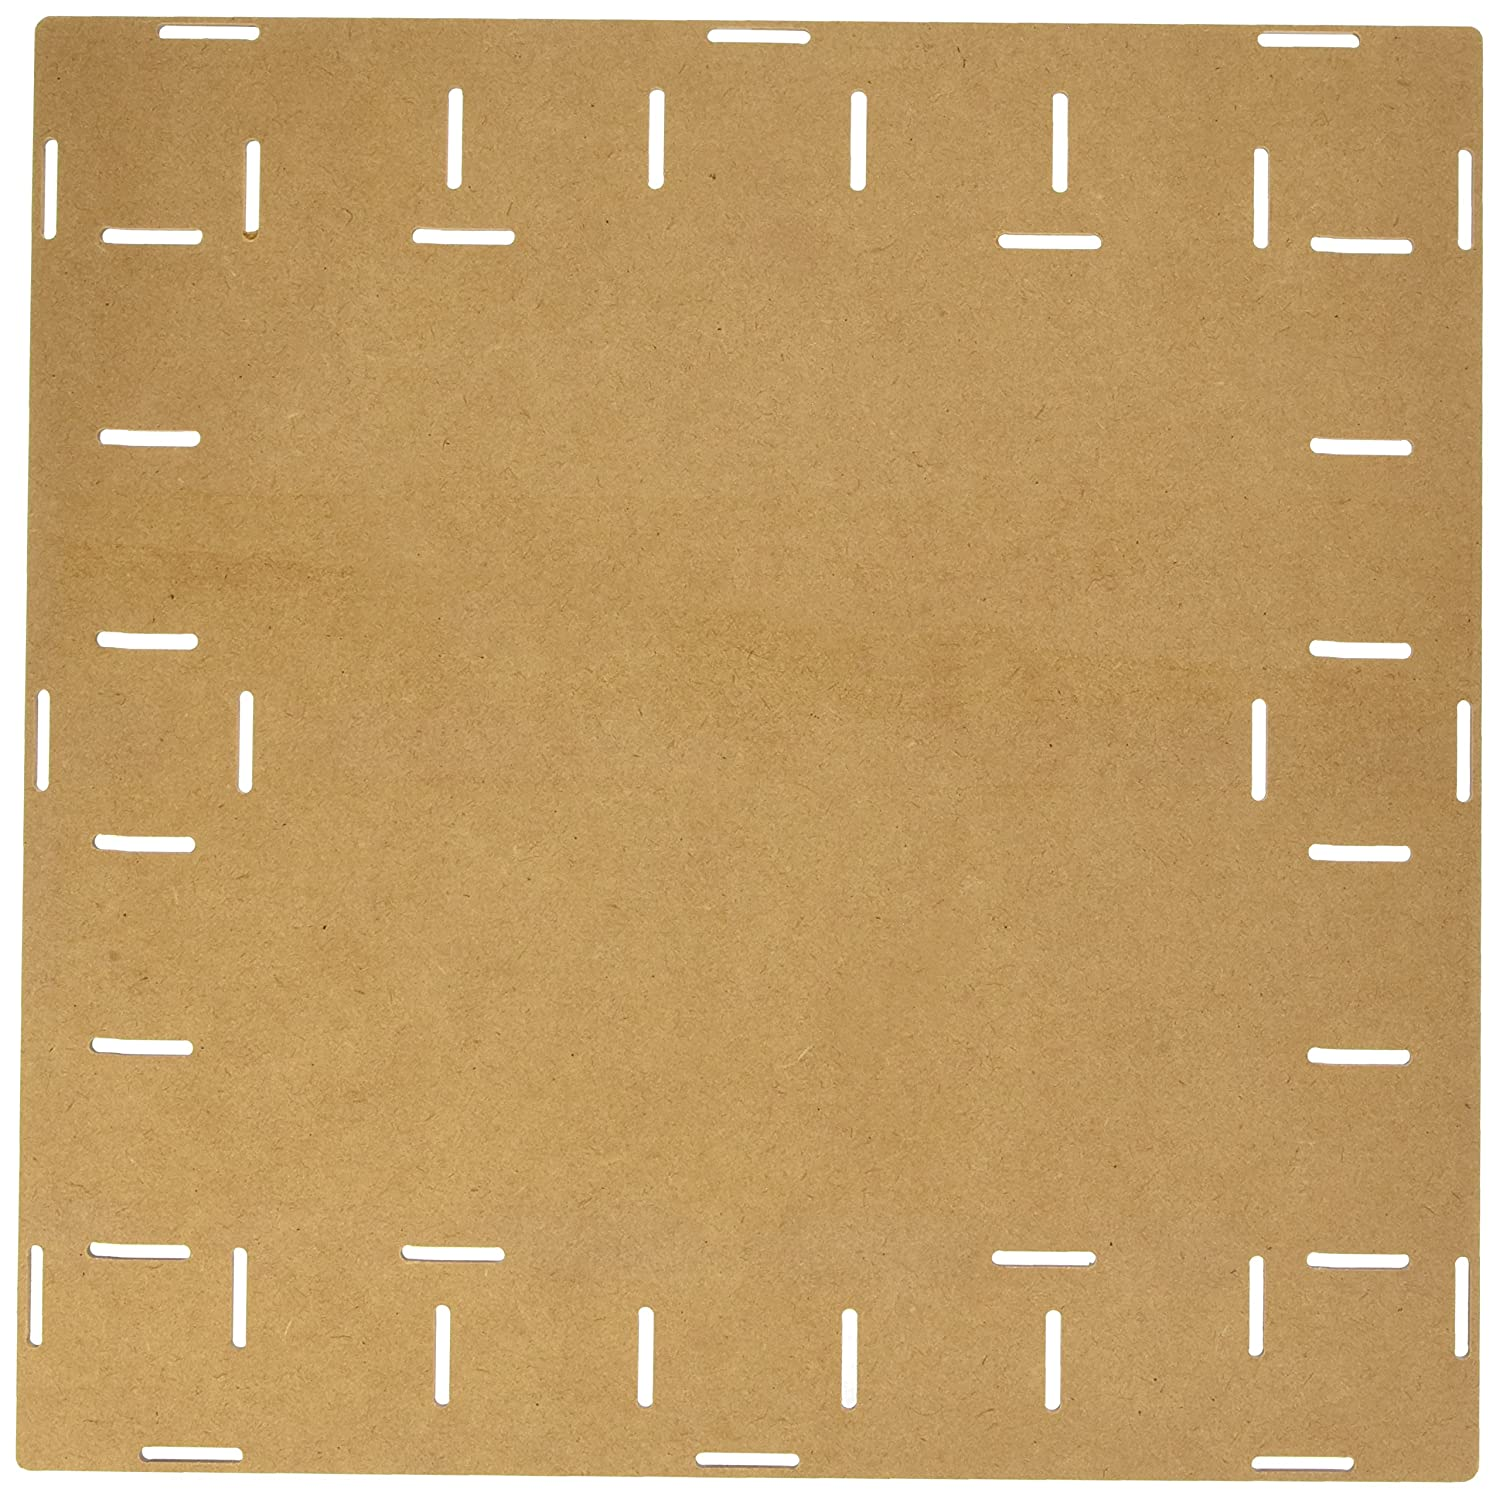 Kaisercraft Beyond The Page MDF Advent Calendar, 13-Inch by 13-Inch Kaisercraft Pty Ltd SB2066